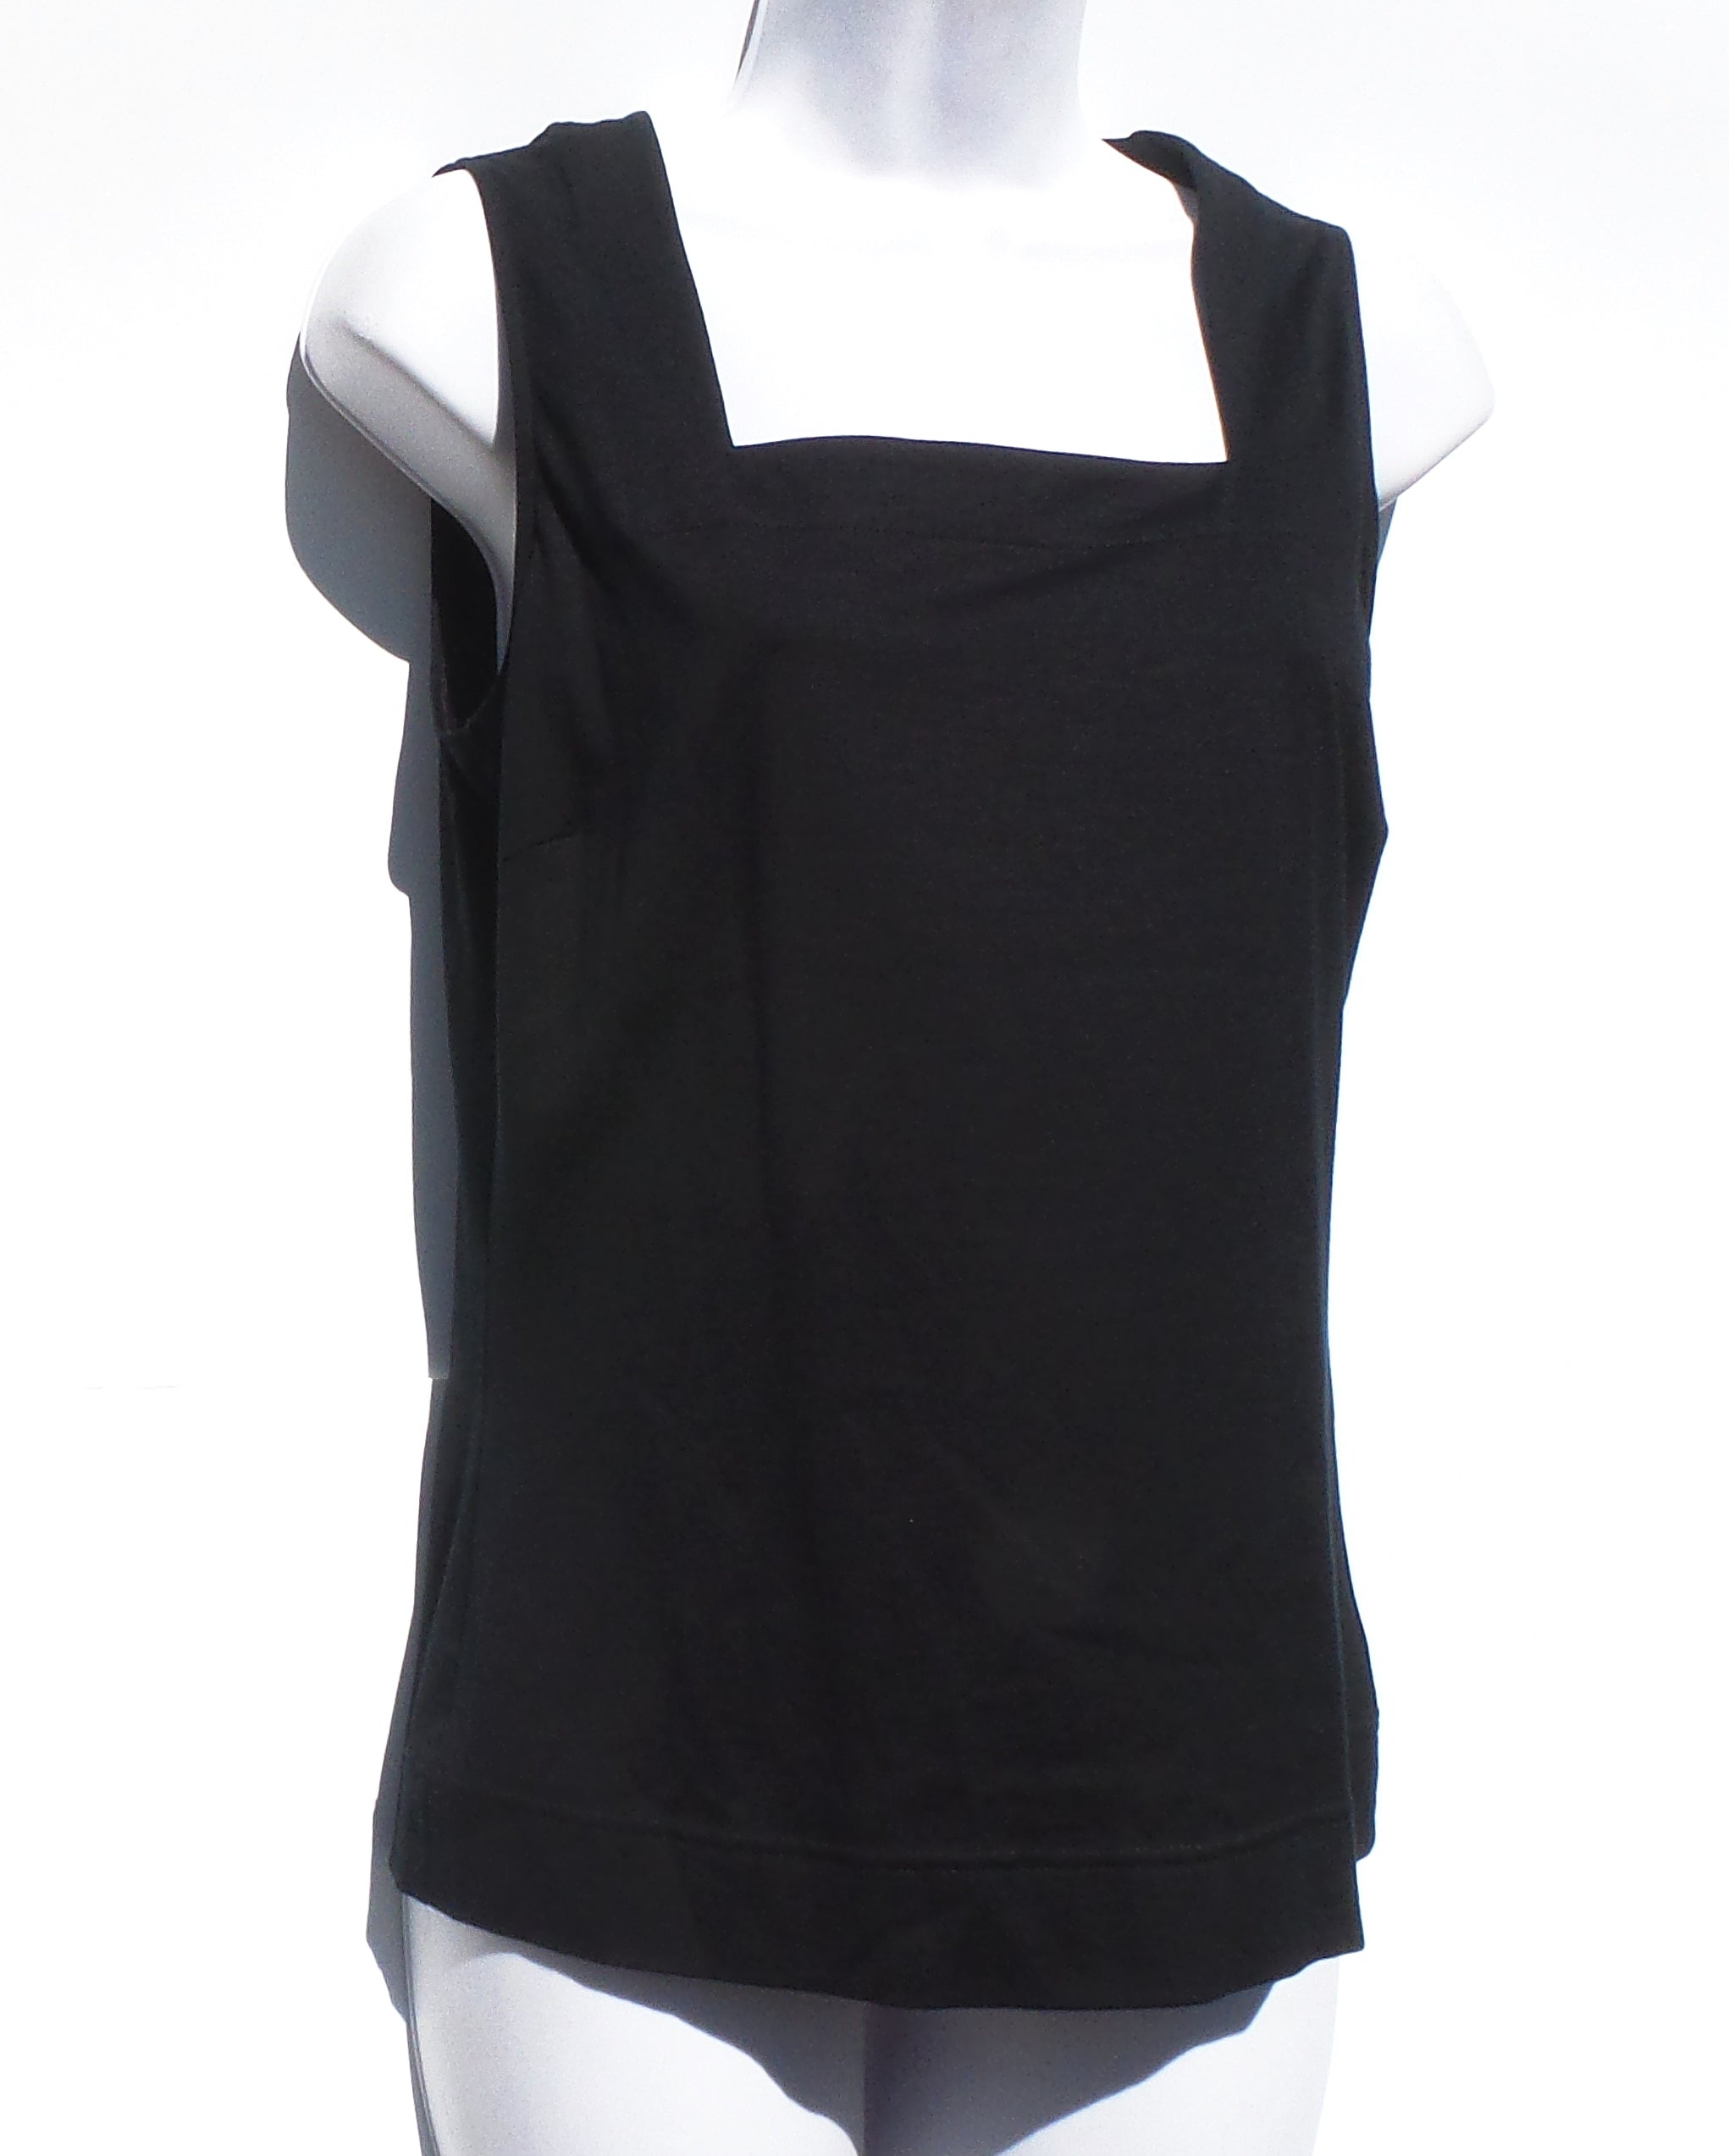 'Sold' AKRIS Punto Black Cotton Square Neckline Sleeveless Jersey Tank Top 8 FR 40 $275